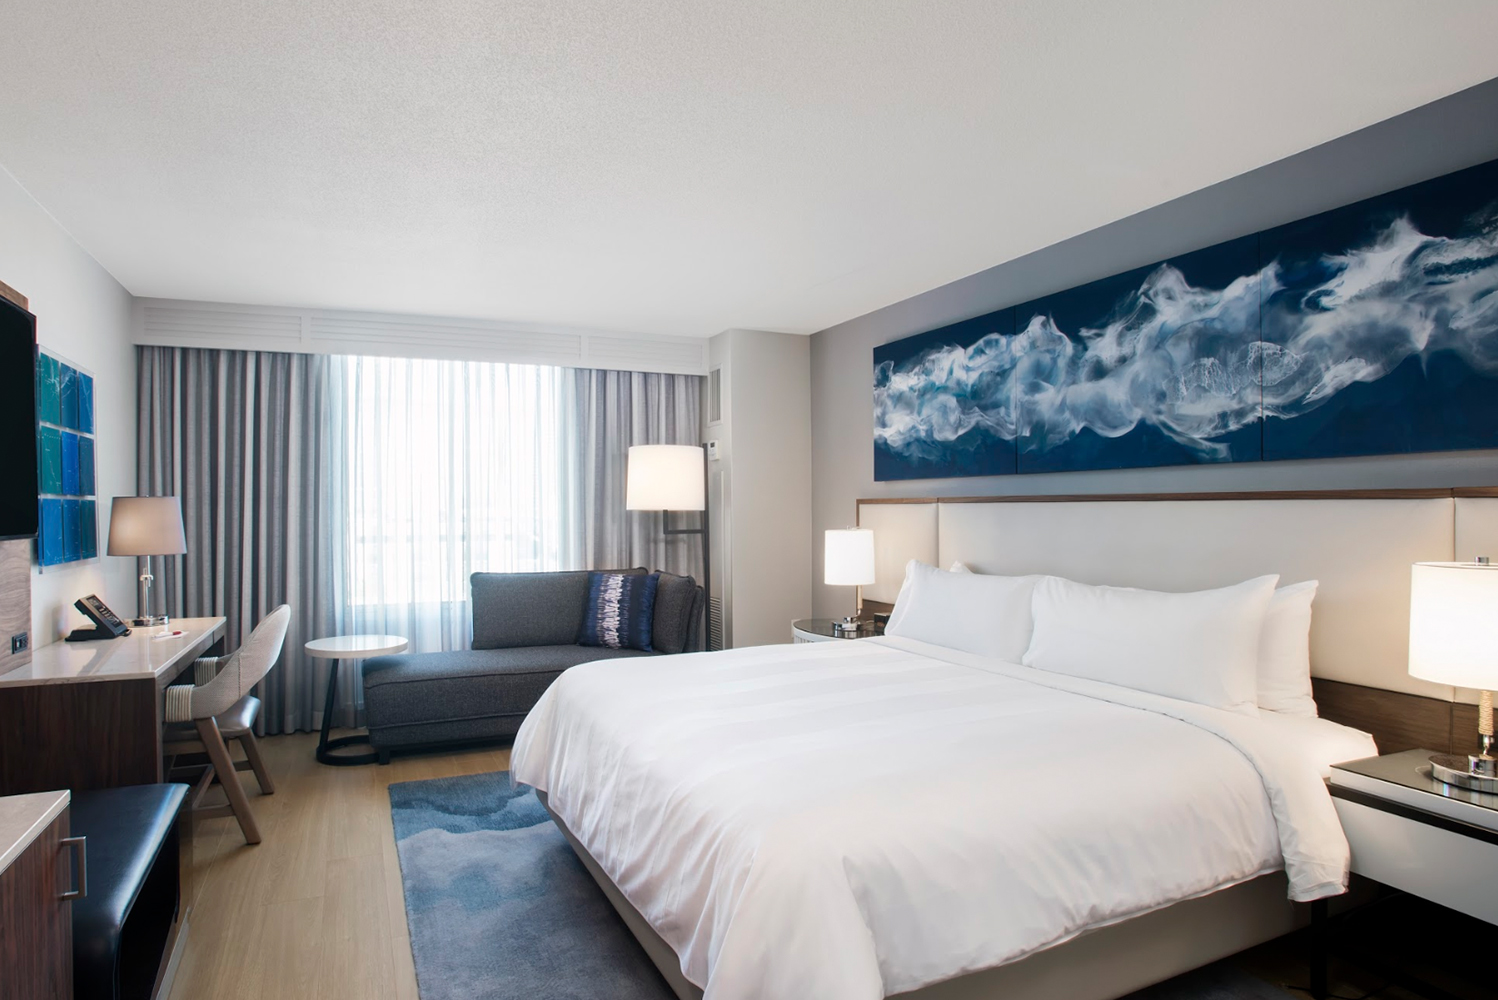 The enhancements include the 727 guestrooms, over 40,000 square feet of meeting spaces, a refreshed Great Room, and the addition of two new restaurant concepts.